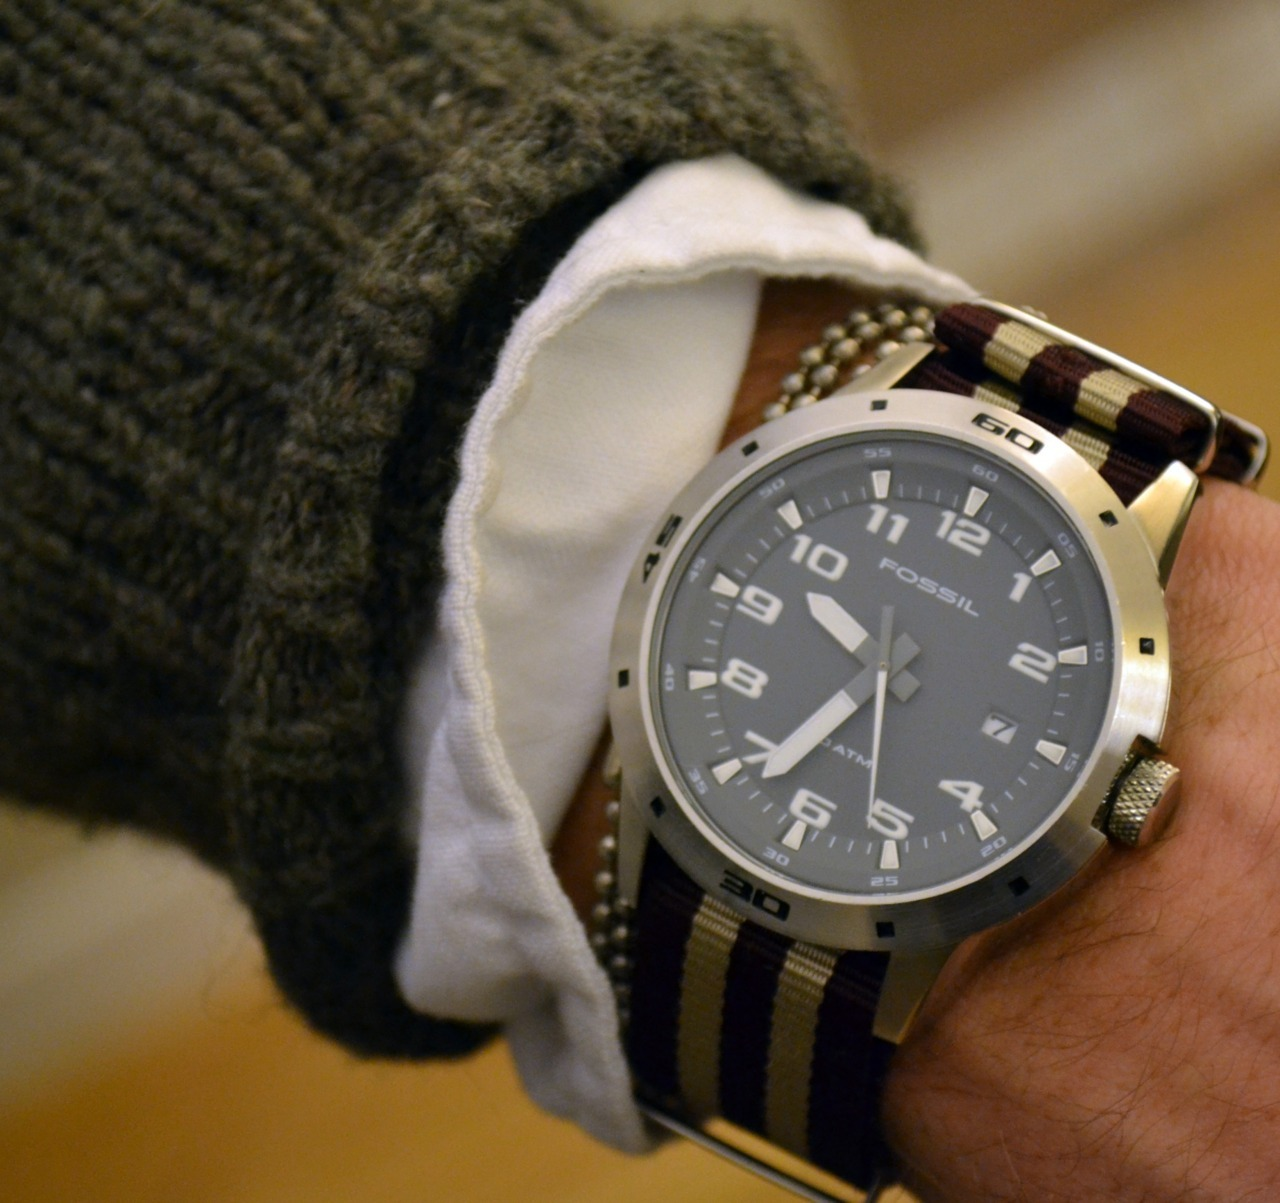 anythingman :     i still hate fossil. but damn.     me too bro. agreed.